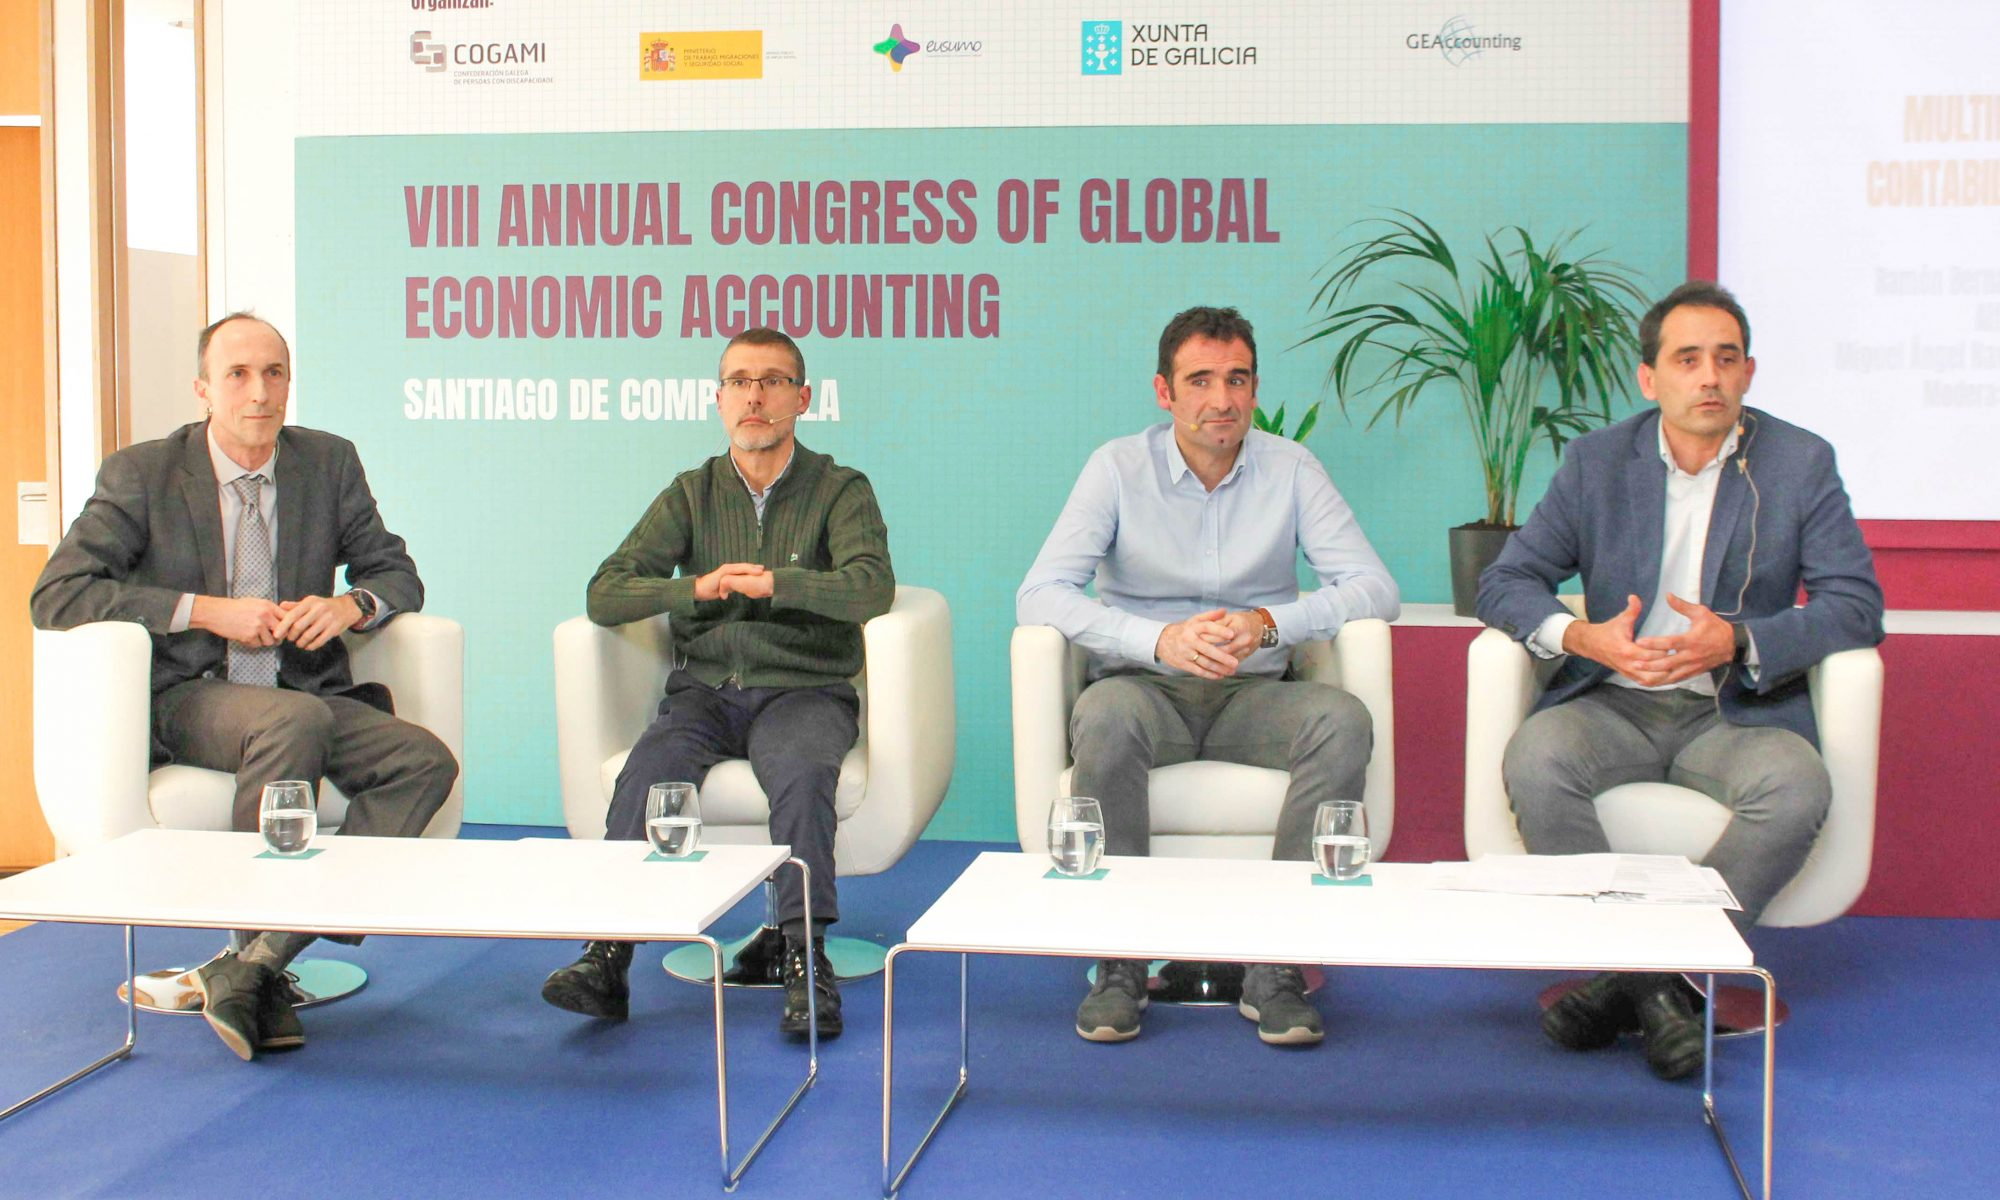 KL katealegaia participa en el VIII Annual Congress of Global Economic Accounting «Valor Social y Desarrollo Sostenible»